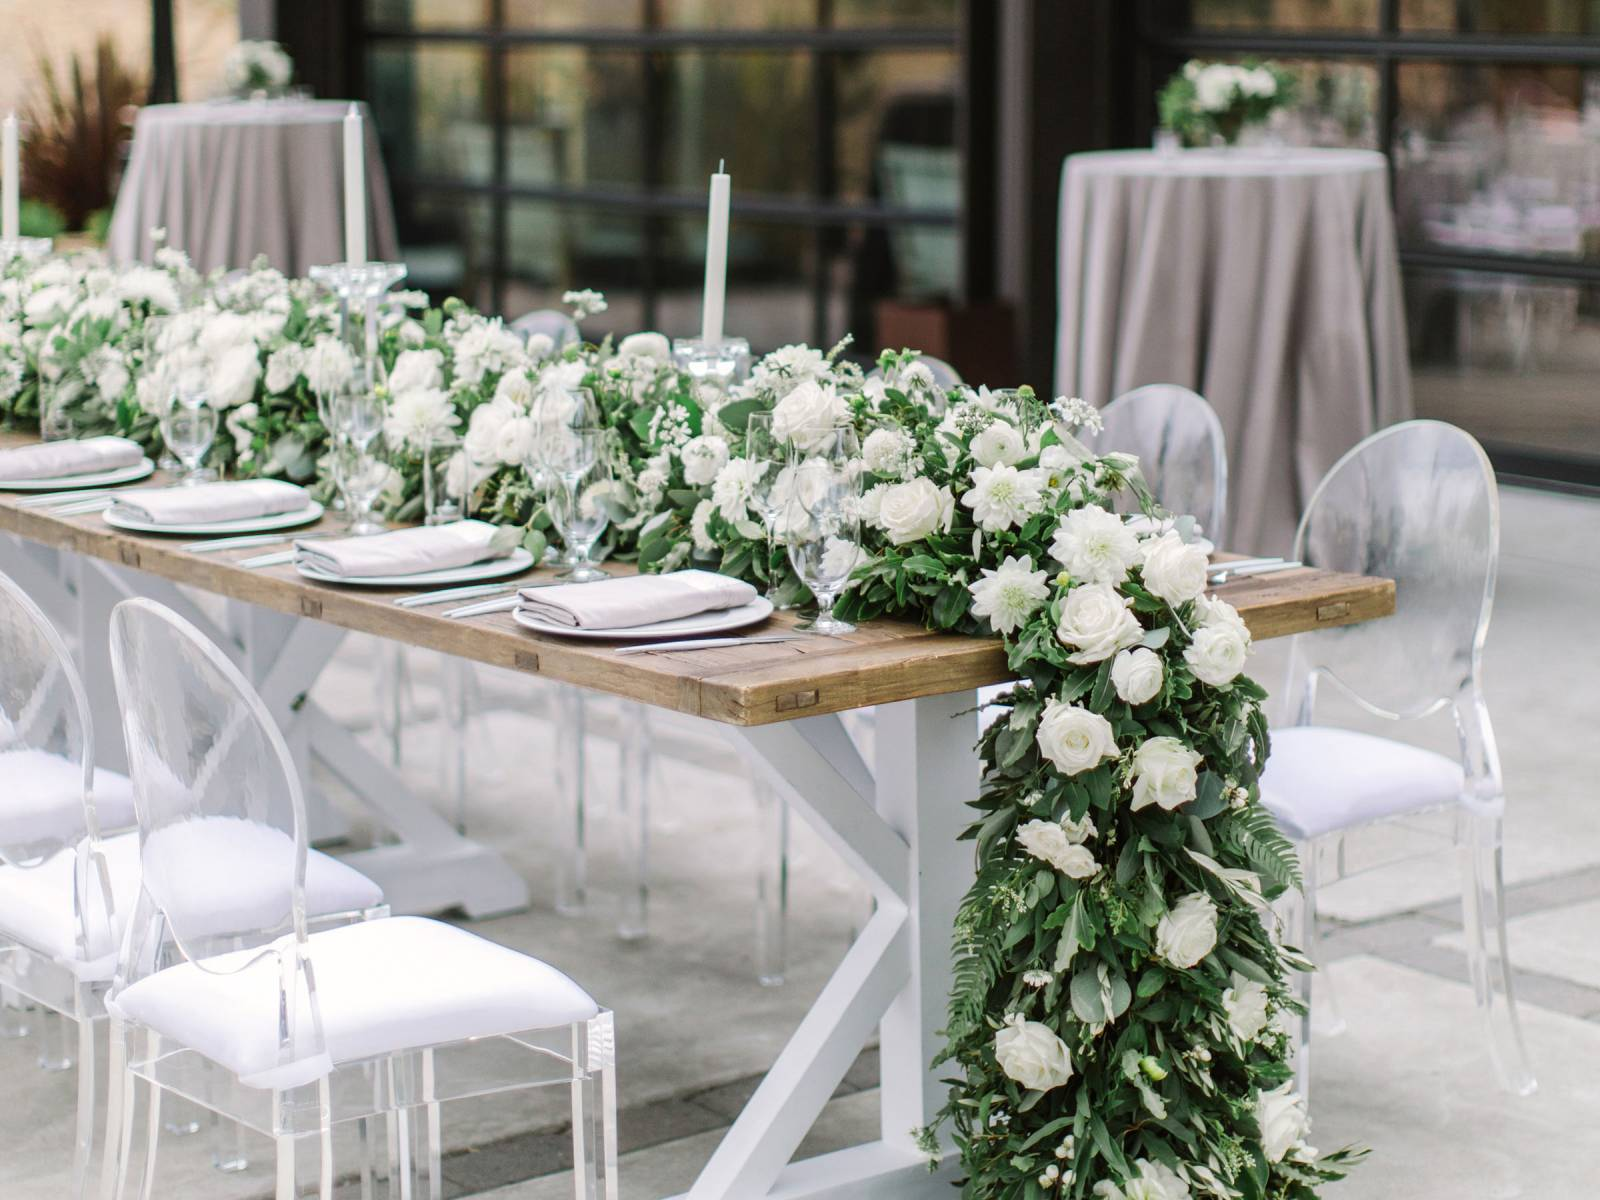 cascading floral runner in white and greenery